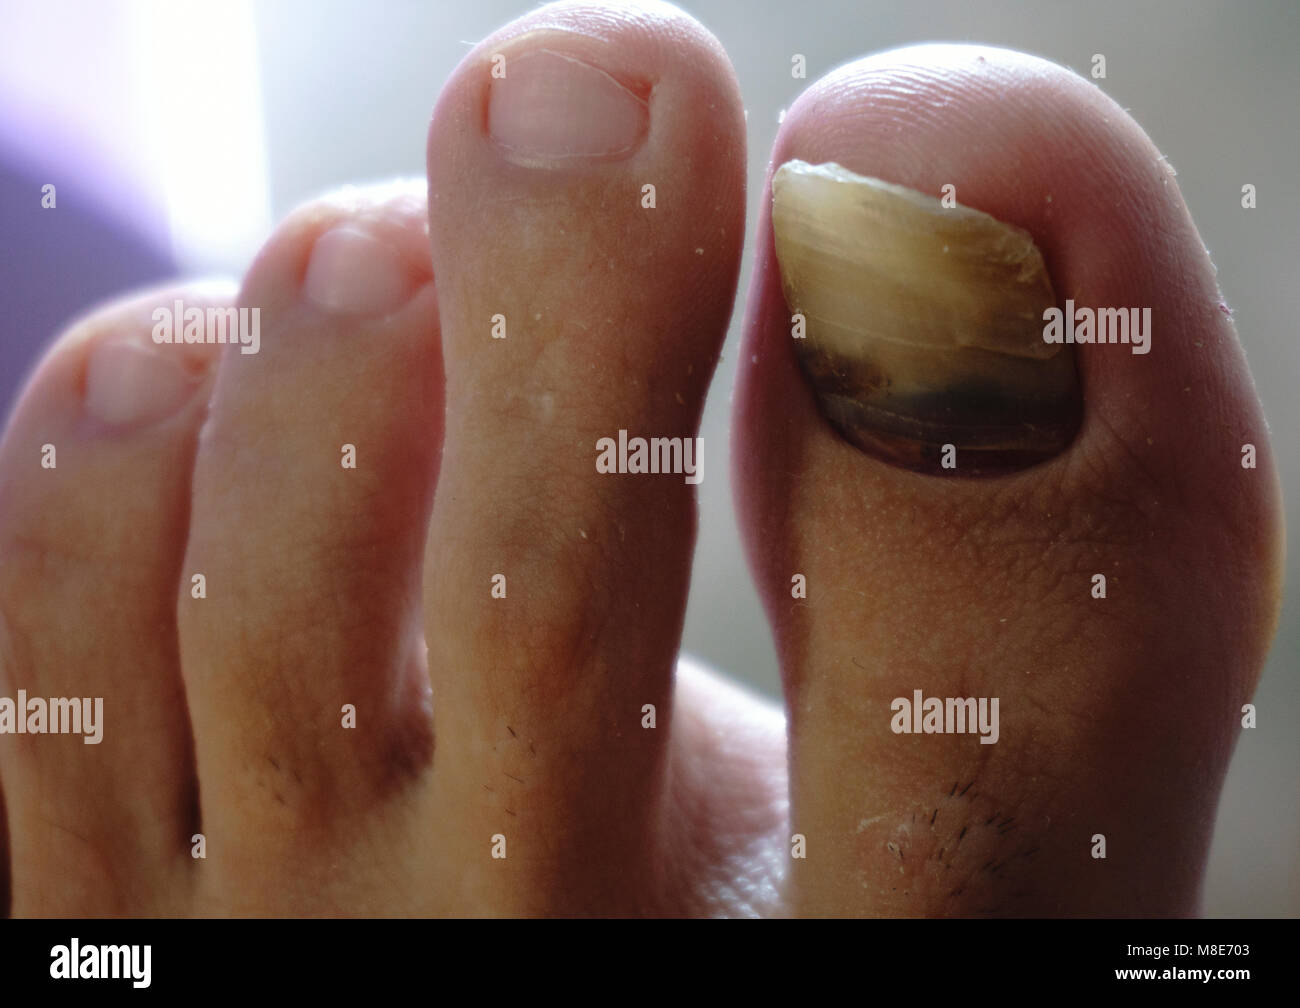 Cracked Nail Stock Photos & Cracked Nail Stock Images - Alamy